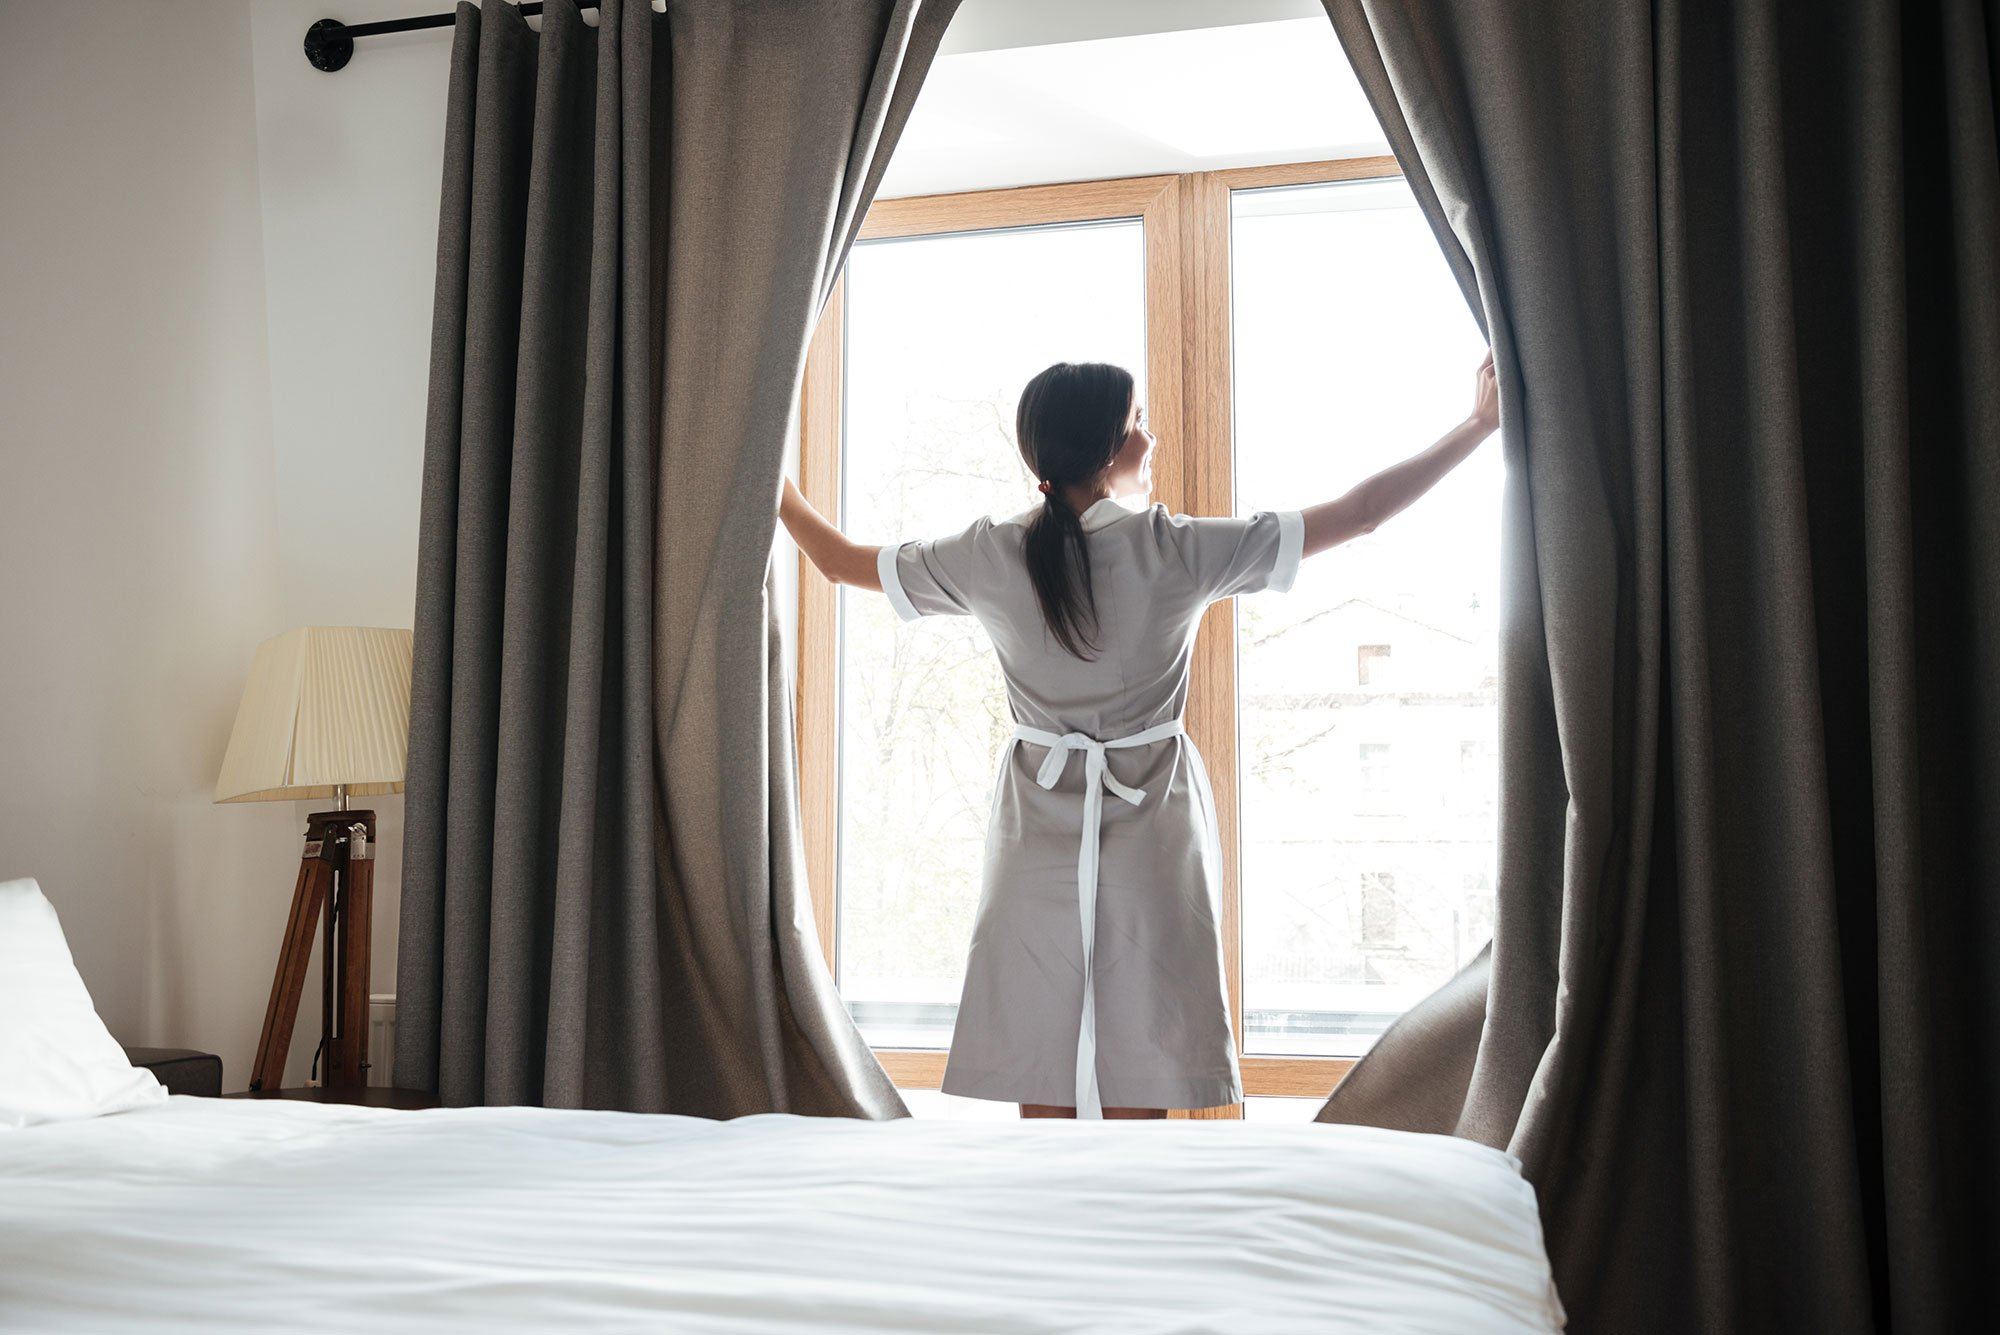 female-chambermaid-opening-window-curtains-in-the--PEY44UY_sm